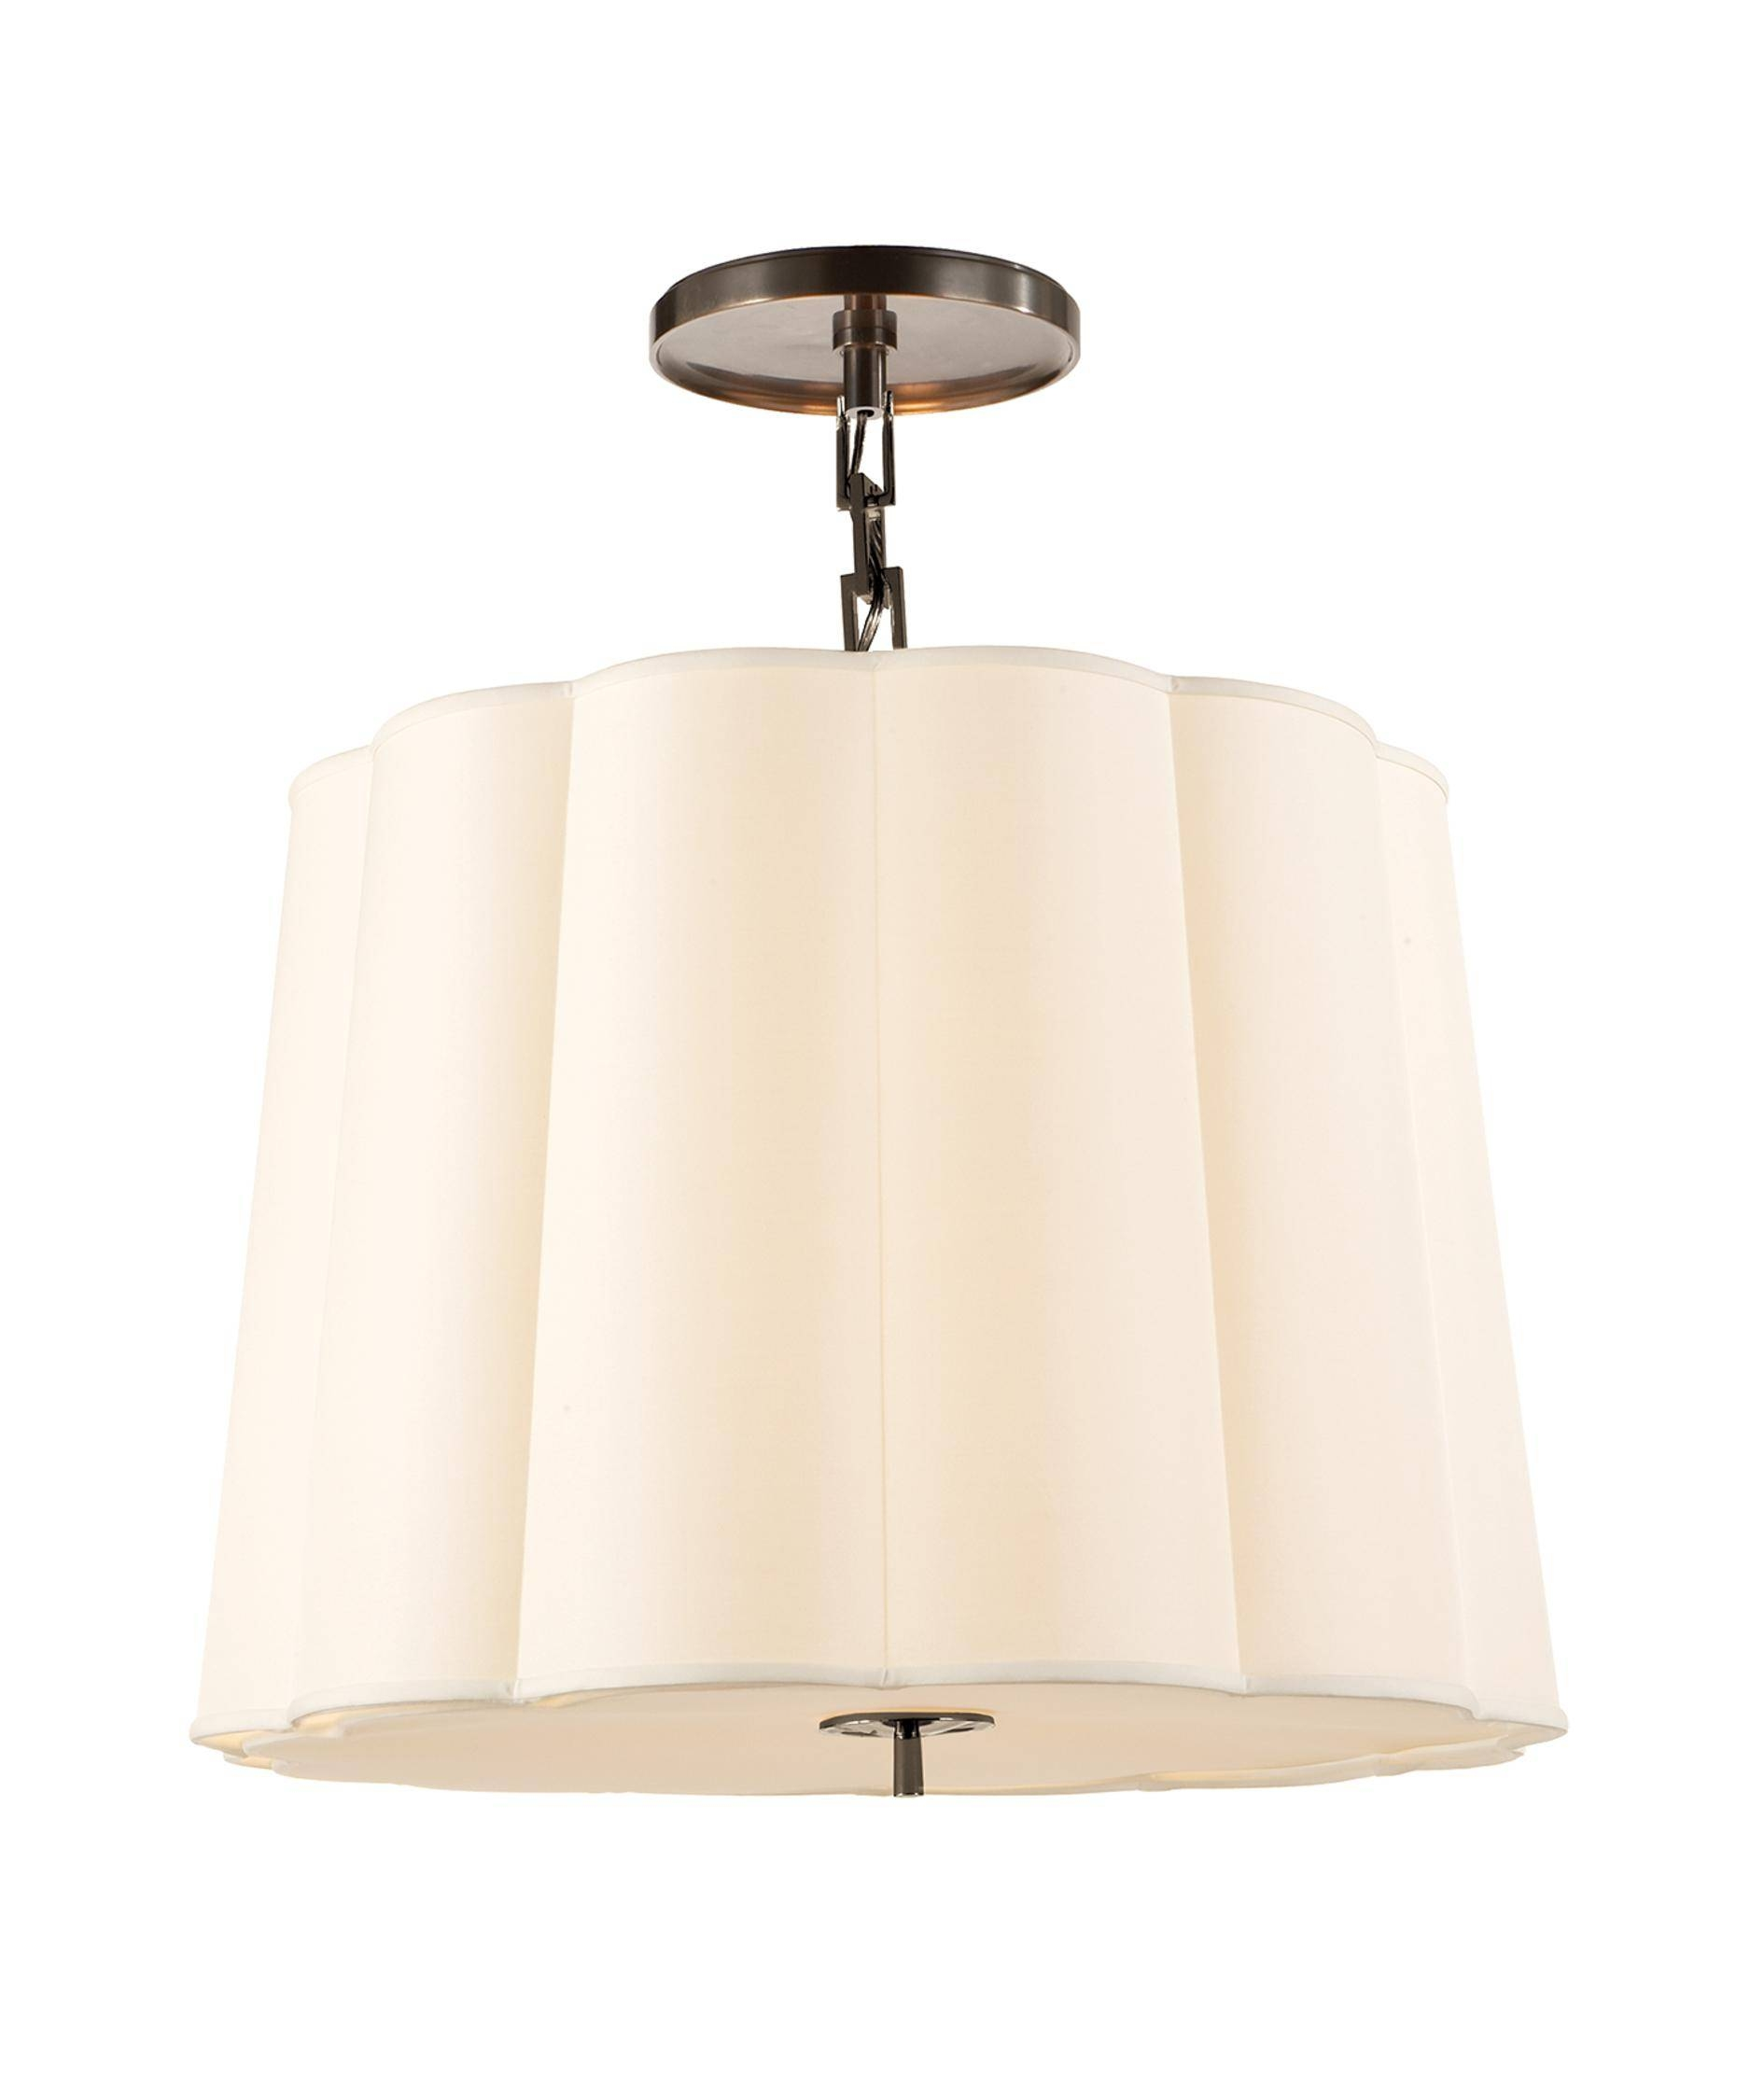 Visual Comfort Bbl5015 Barbara Barry Simple Scallop 25 Inch Wide 5 intended for Scalloped Pendant Lights (Image 14 of 15)